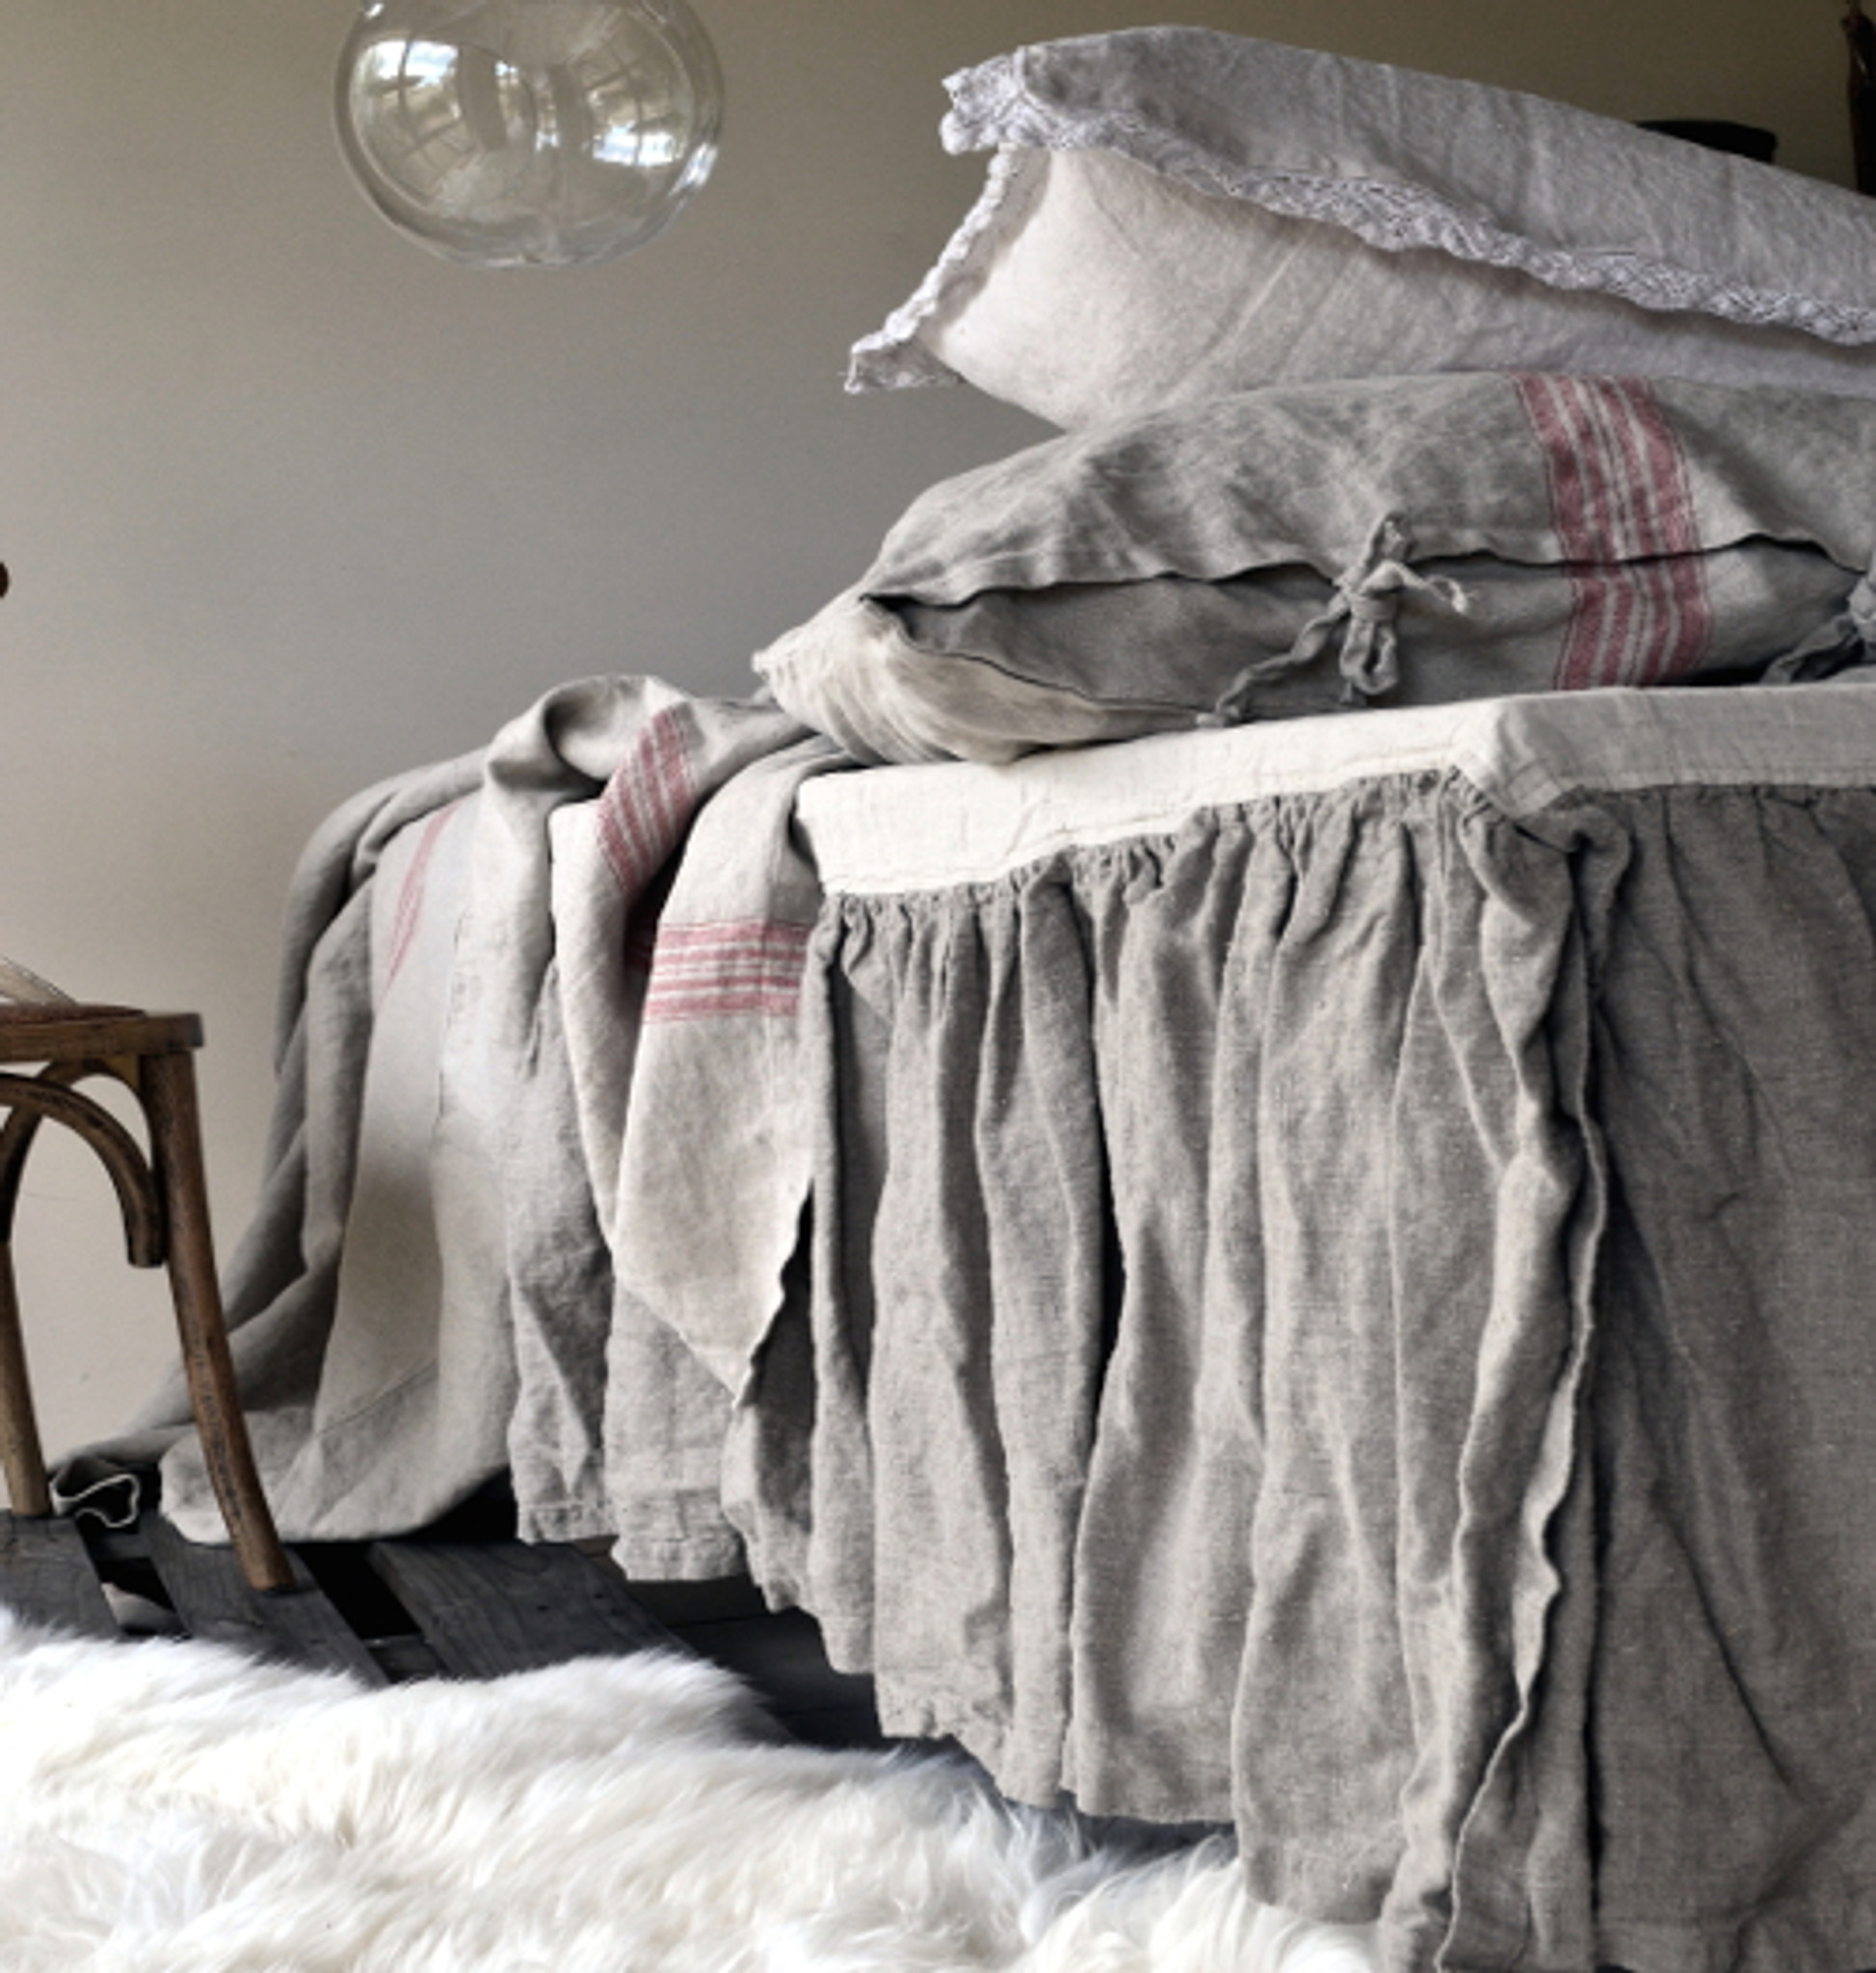 Heavy Weight Rustic Rough Stonewashed Linen Bed Skirt Dust Ruffle Valance